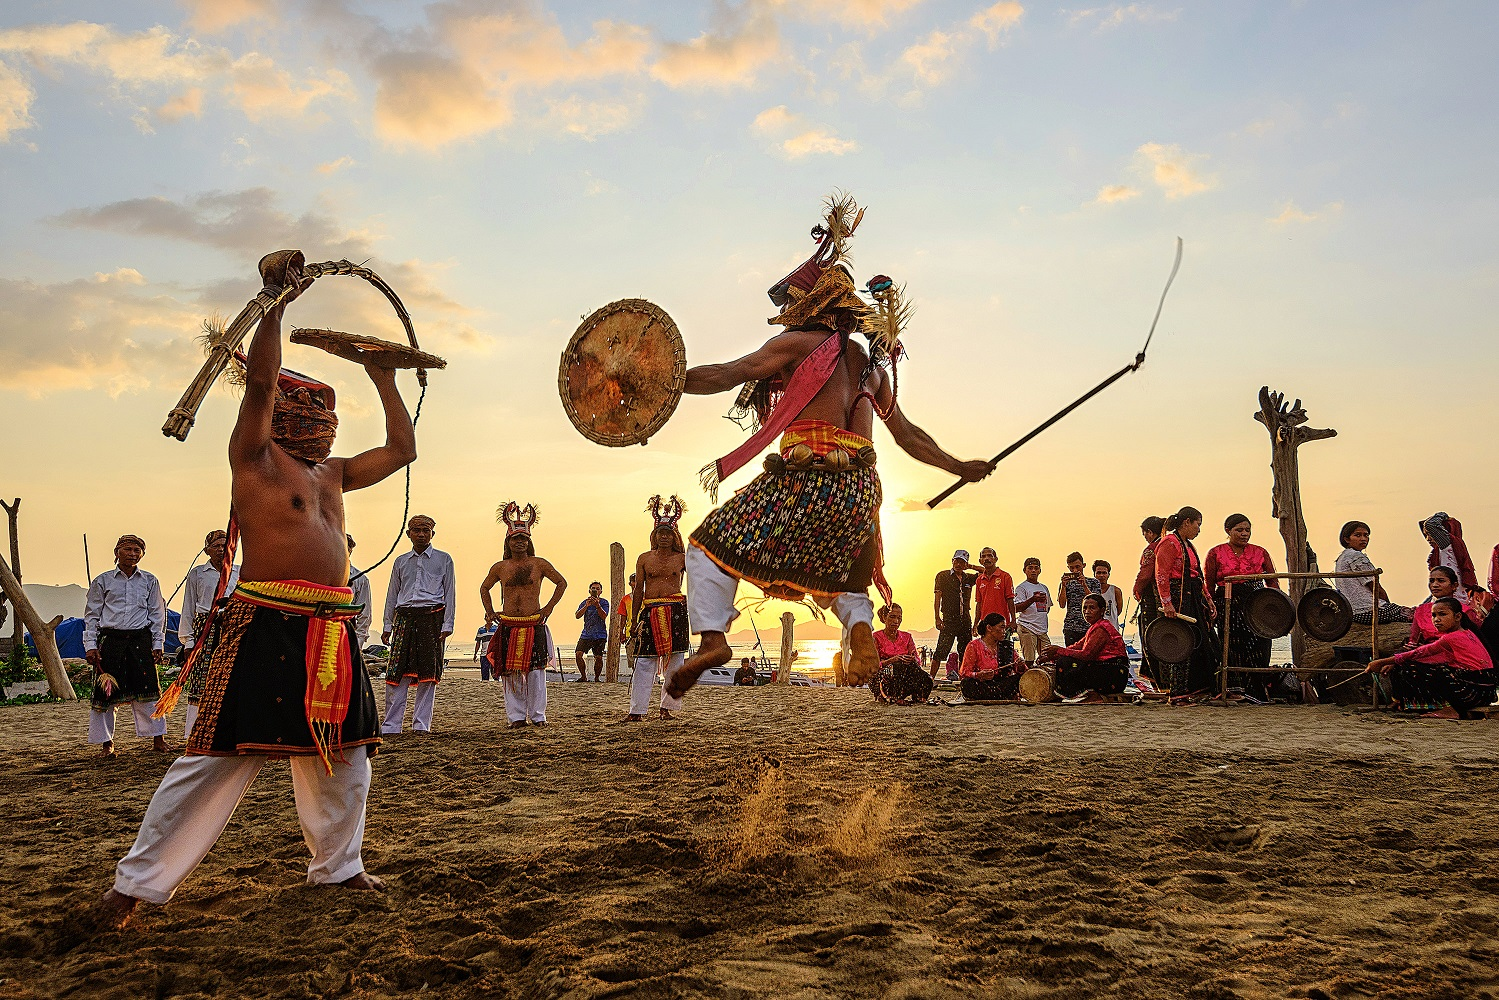 Witness the Caci Cambuk War Dance in Flores